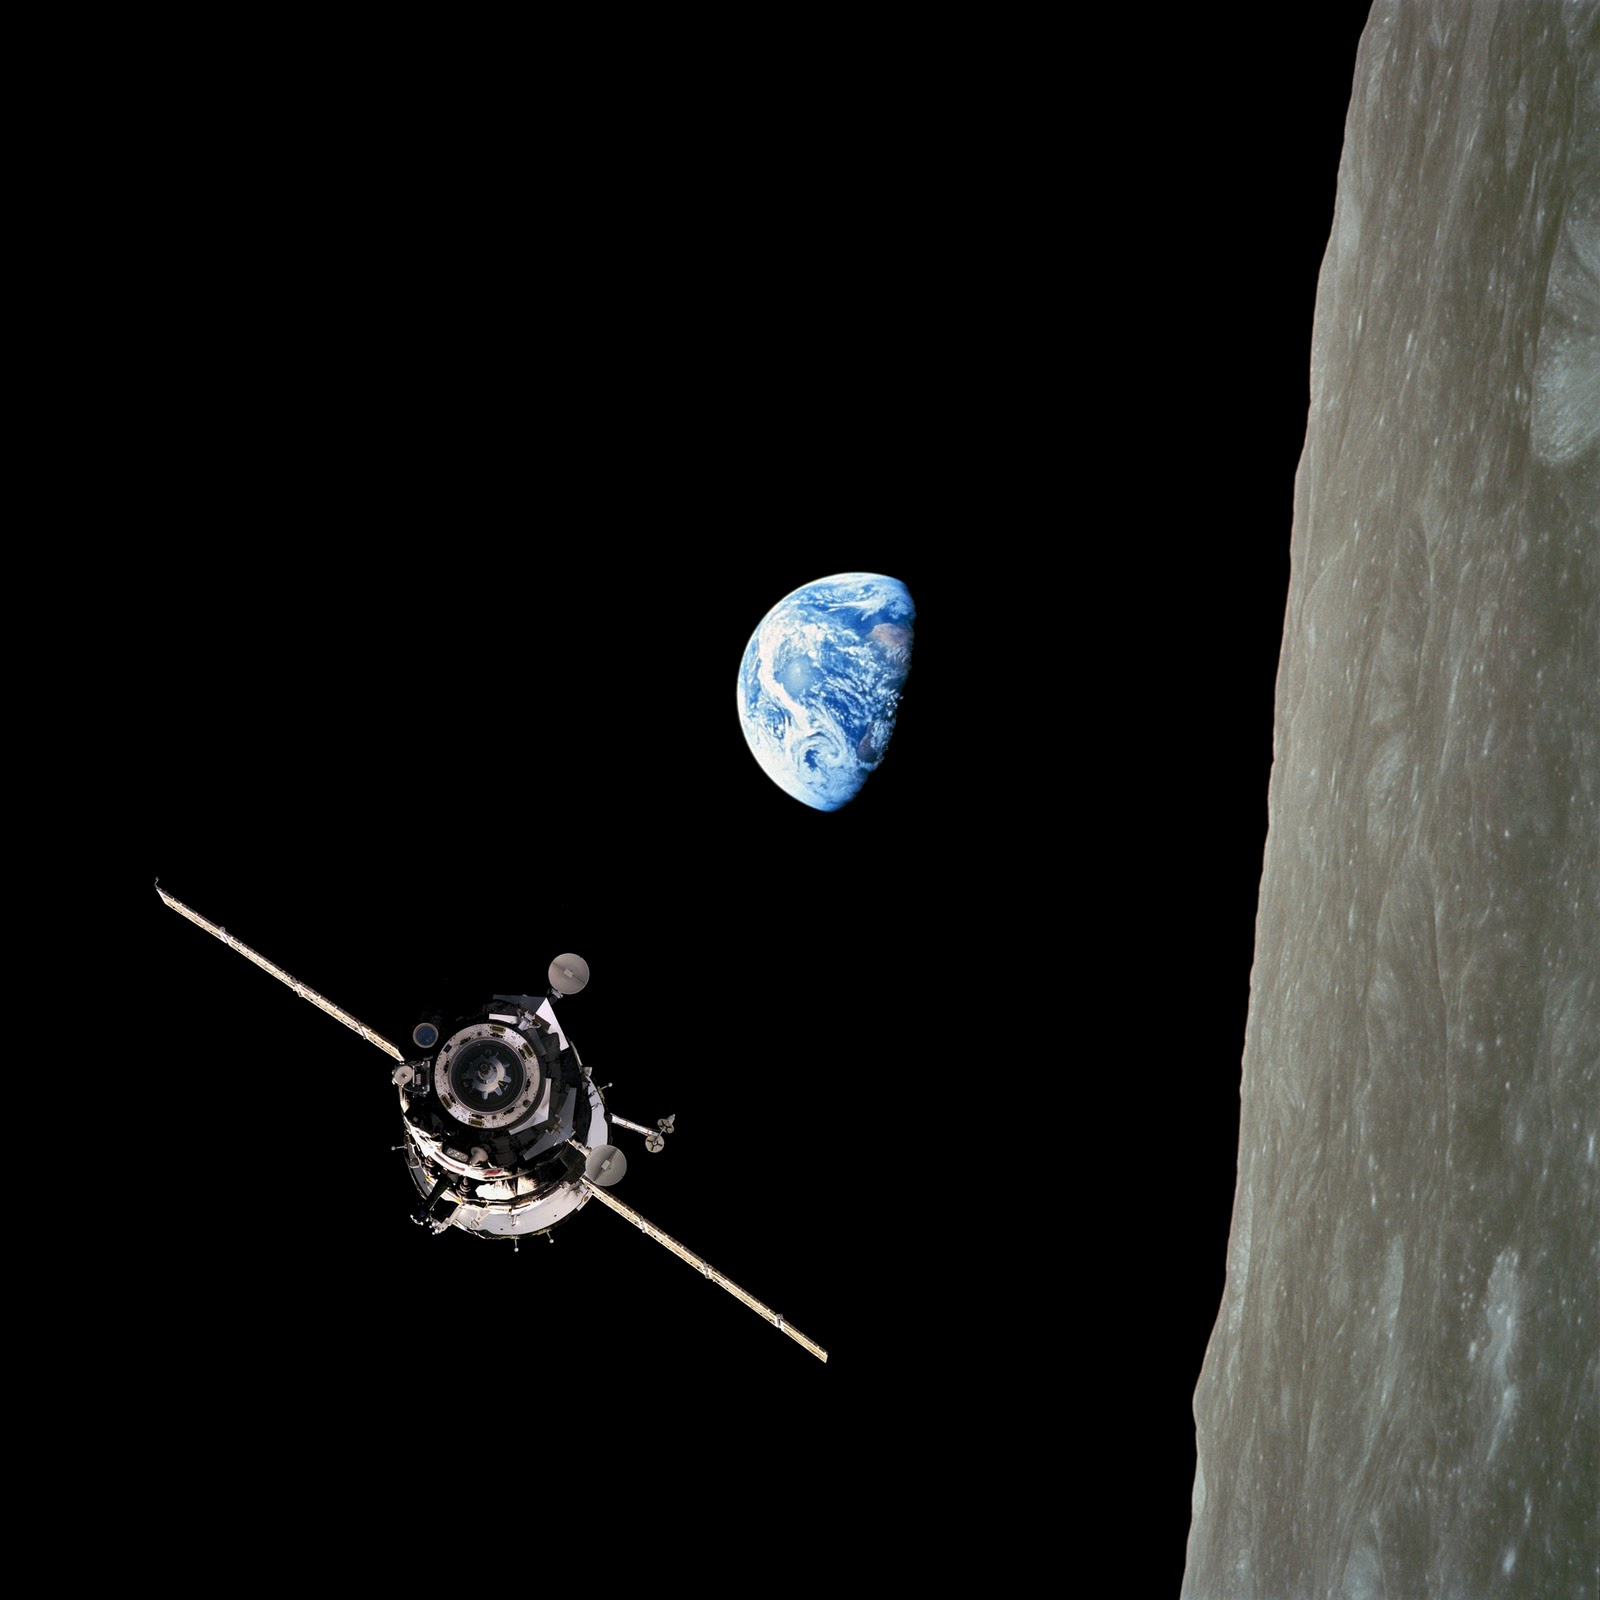 Apollo 8 Orbits the Moon - Pics about space